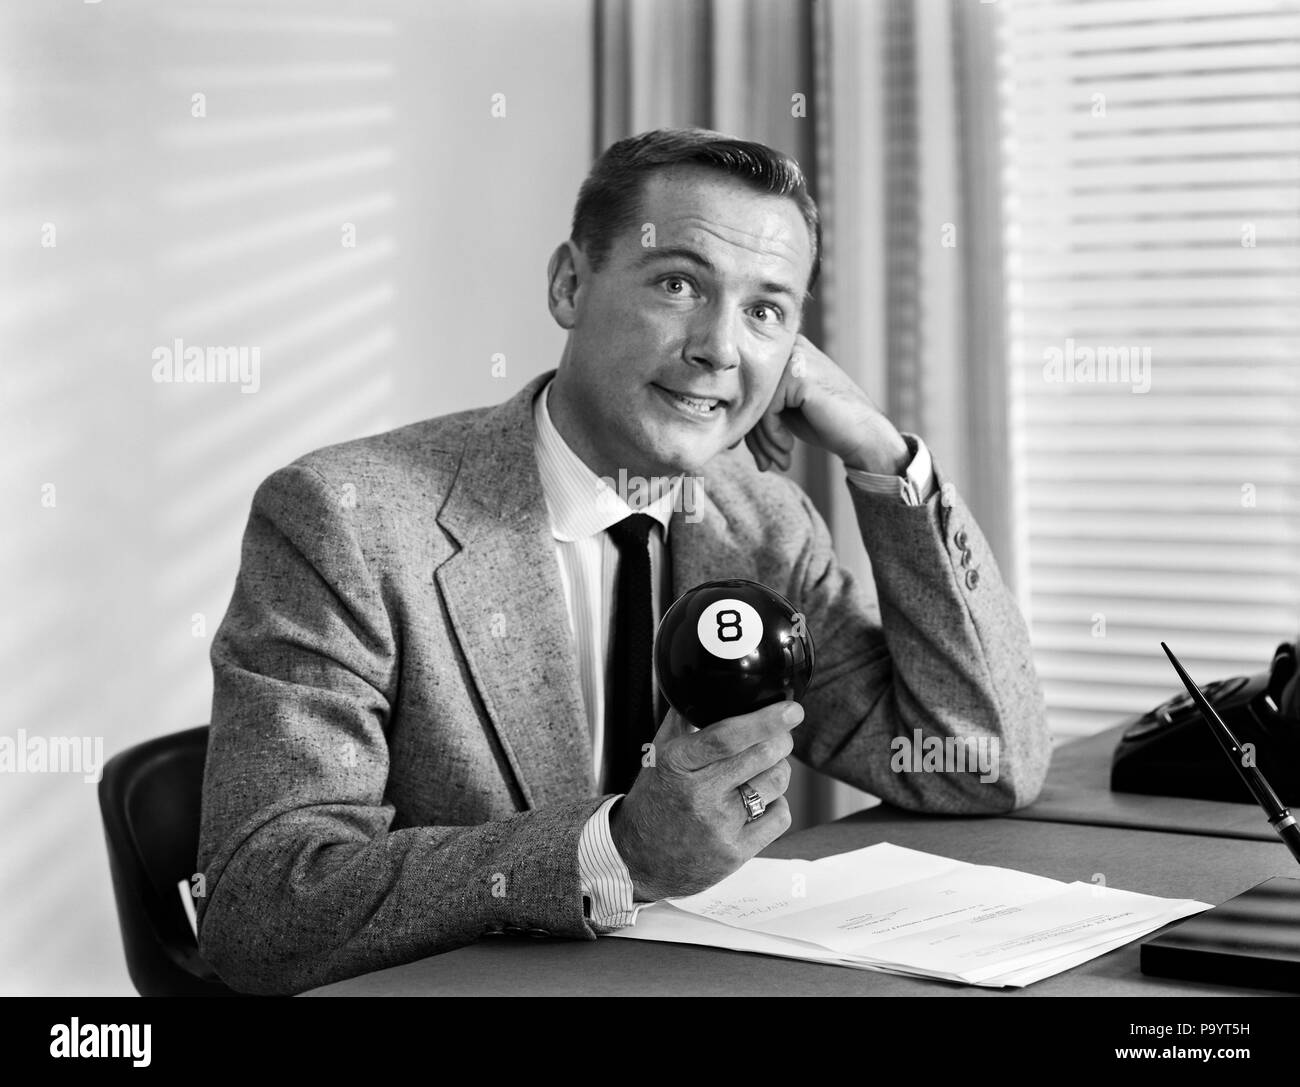 1950s WORRIED BUSINESSMAN SITTING AT DESK BEHIND BLACK EIGHT BALL LOOKING AT CAMERA - bx016818 CAM001 HARS RISK NERVOUS CORPORATE EXPRESSIONS B&W SUIT AND TIE SELLING 8 OBSTACLE CAM001 BILLIARDS DISADVANTAGE ESCAPE STUMPED NO ESCAPE DIFFICULTY EIGHT MID-ADULT MID-ADULT MAN SALESMEN 8 BALL BLACK AND WHITE CAUCASIAN ETHNICITY EIGHT BALL OLD FASHIONED PERPLEXED - Stock Image